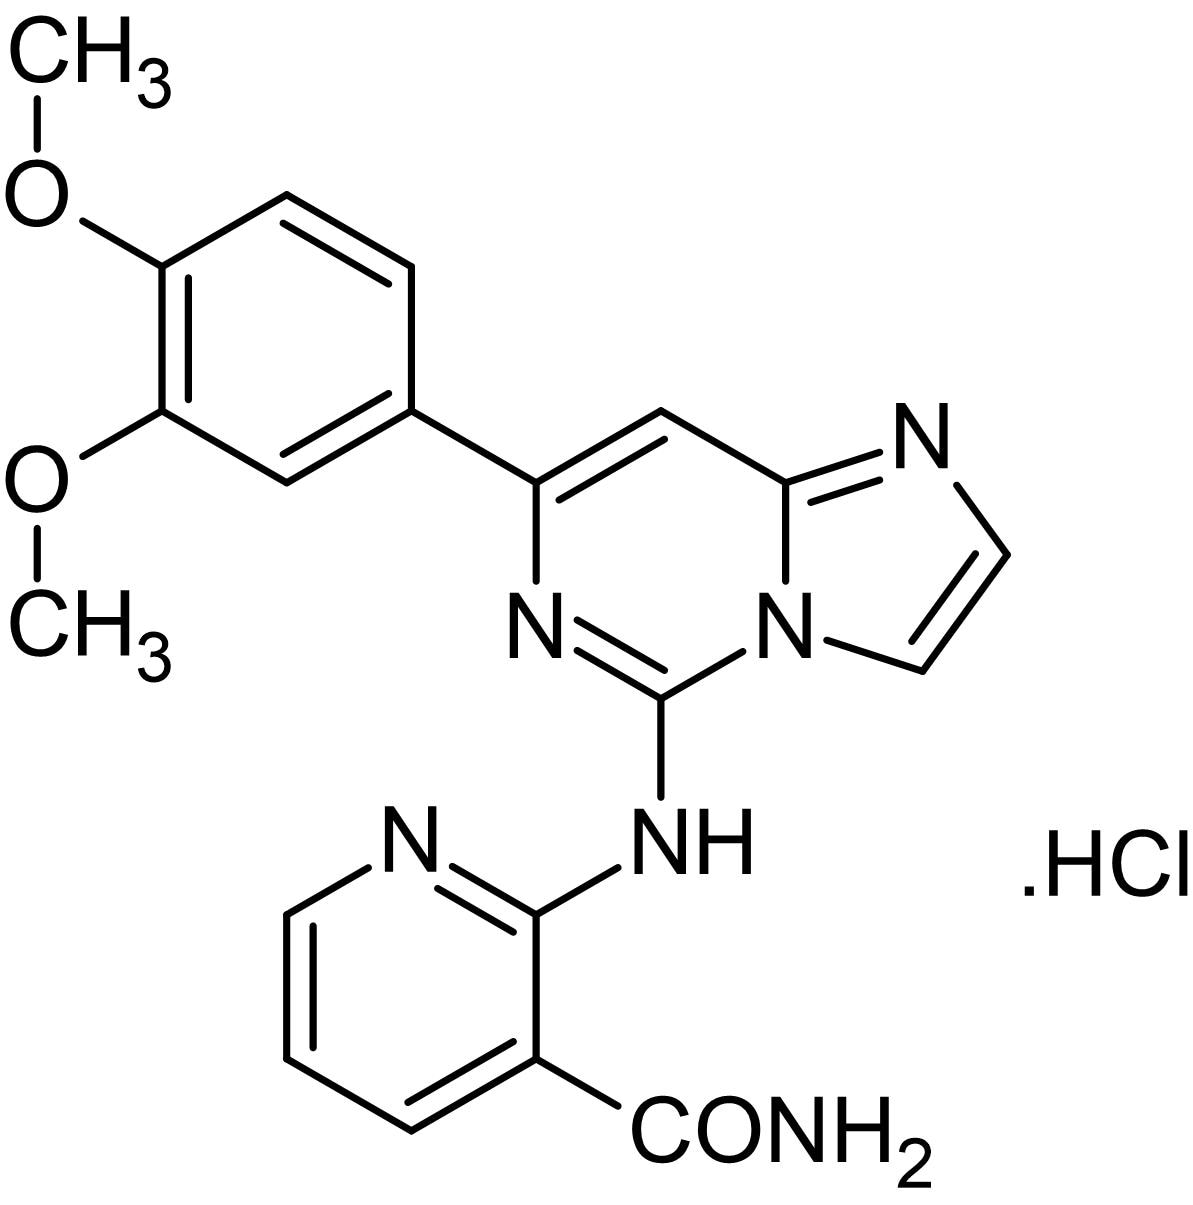 Chemical Structure - Bay 61-3606 hydrochloride, Syk kinase inhibitor (ab142106)